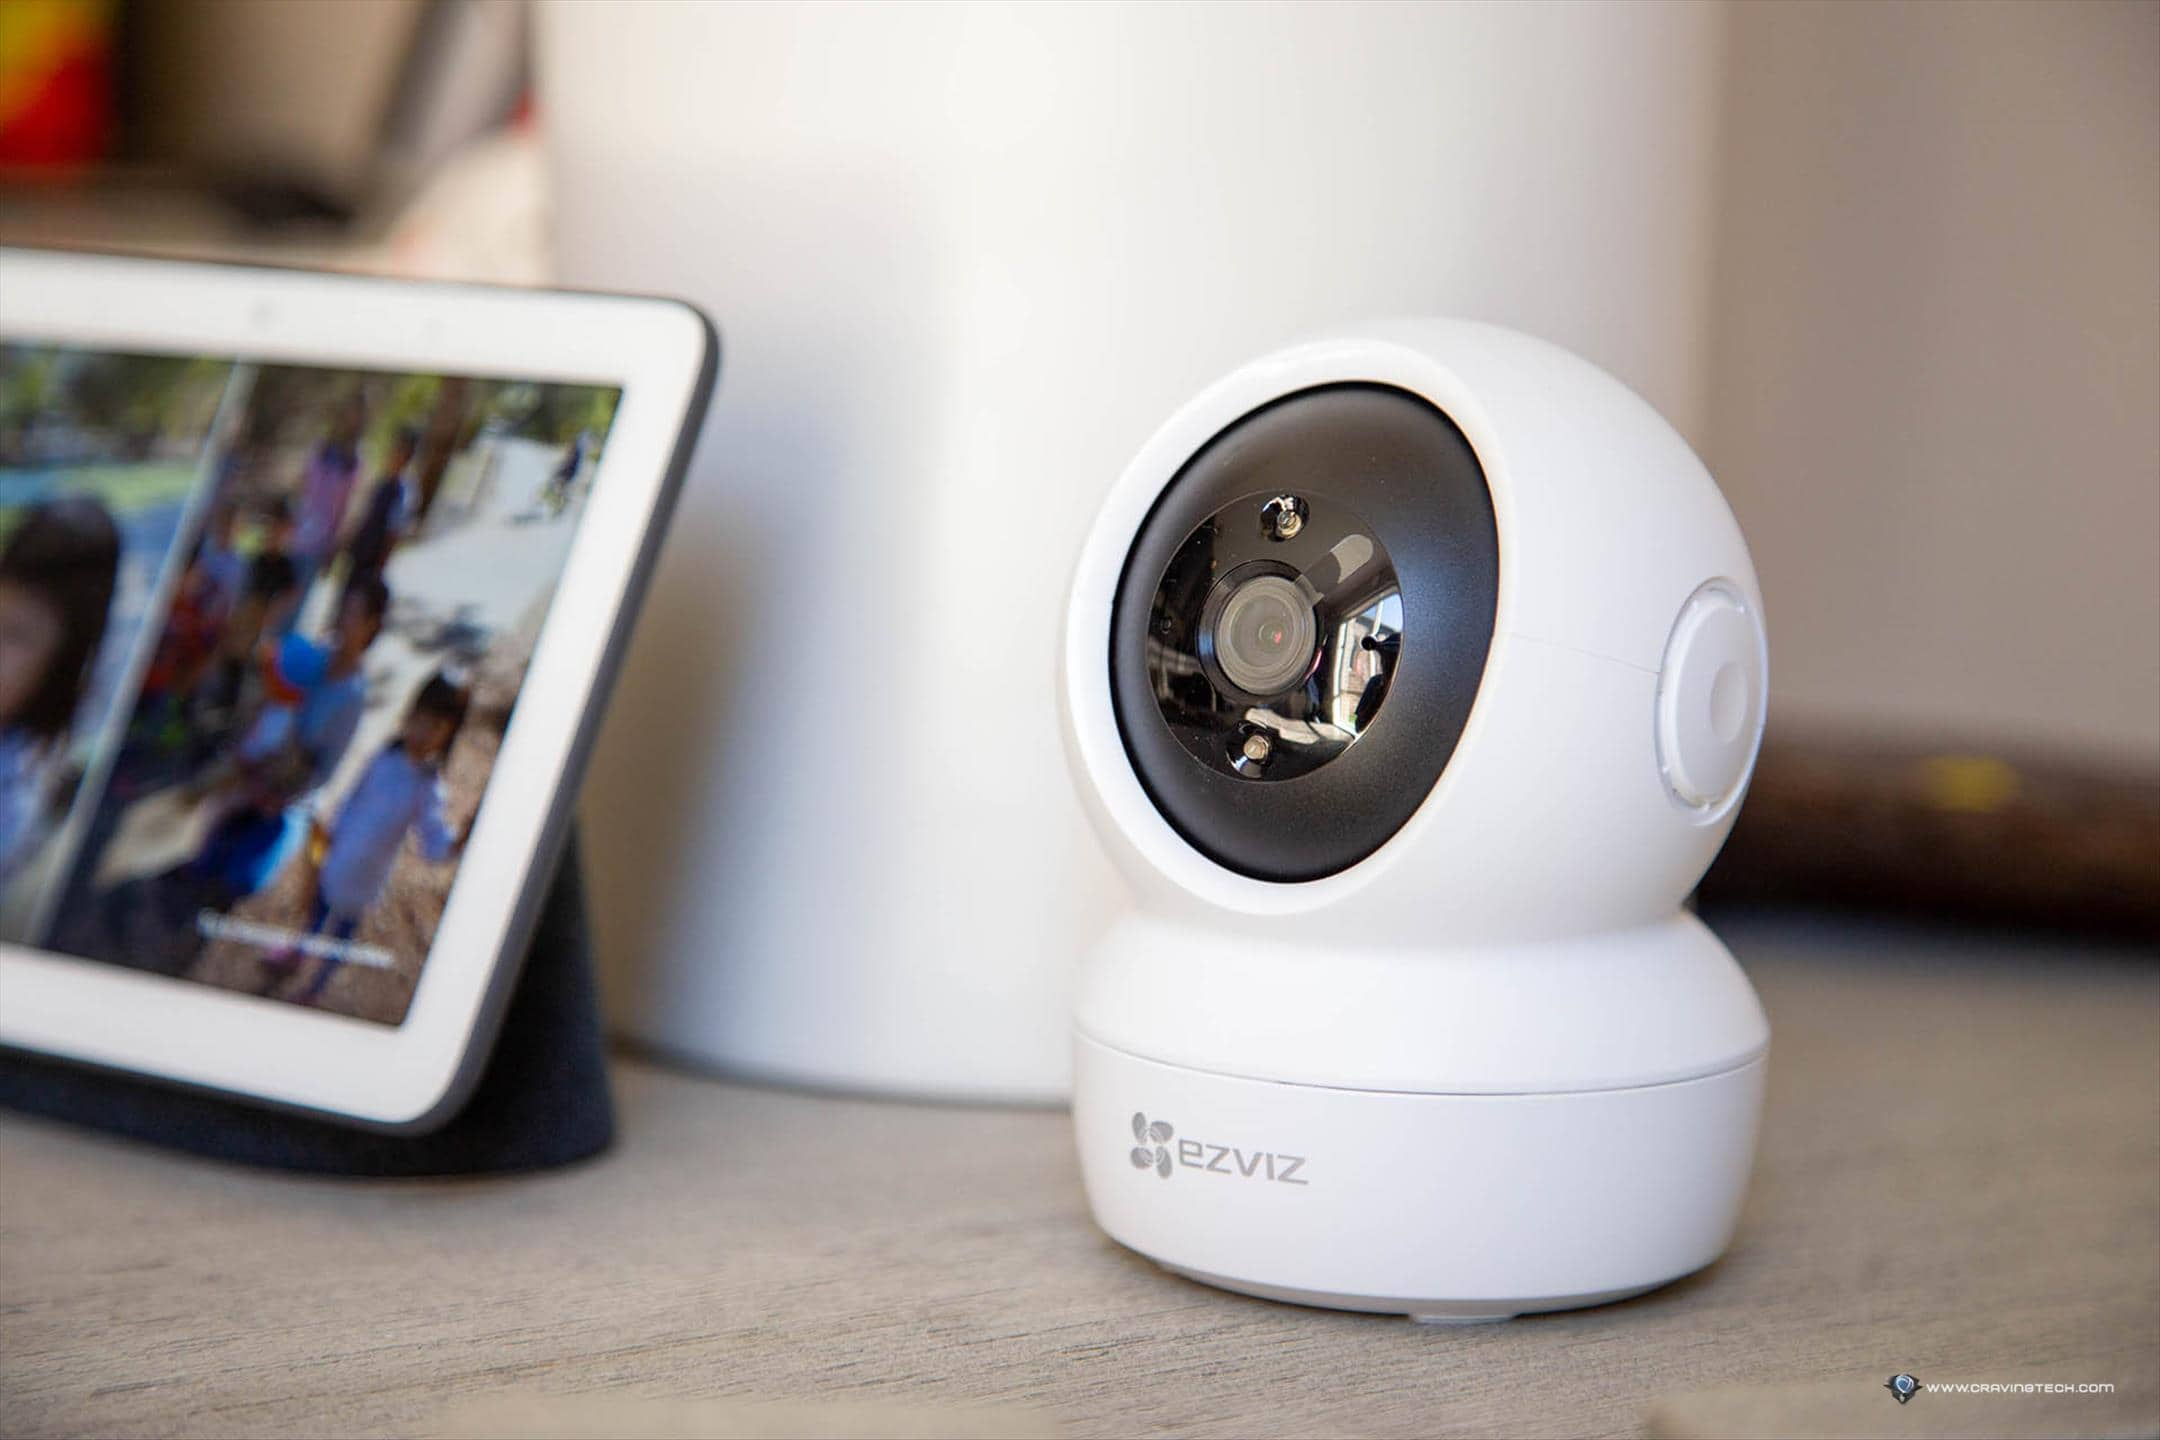 Wallet-friendly, smart, Wi-Fi camera – EZVIZ C6N Camera Review